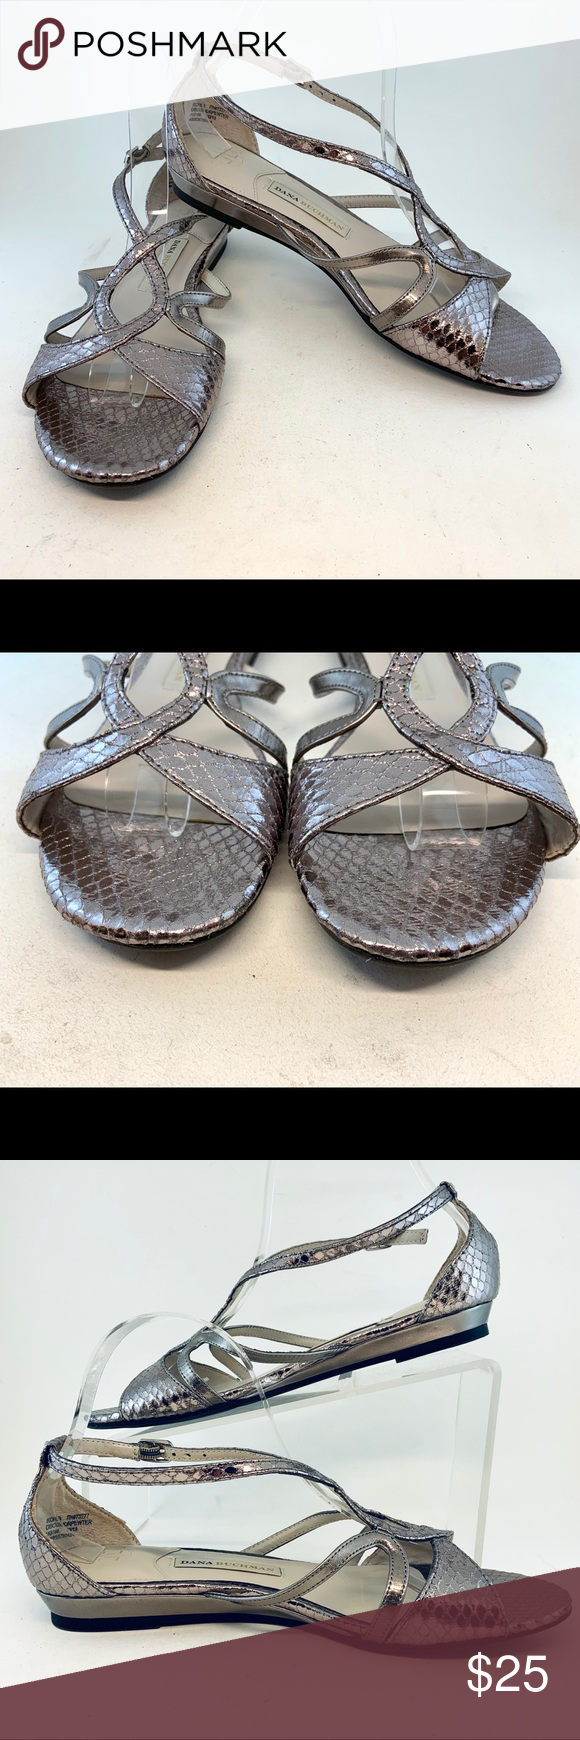 Dana Buchman Metallic Pewter Connor Sandals From a pet and smoke free home, these strappy low wedge sandals are in delightful condition: suuuuuuuper clean footbed, no scuffing, no creasing across the vamp, and light treadwear.      Man-made faux snake skin upper     Textile lining     Buckle at the ankle with elastic for a comfortable fit     Heel height: 0.75 inches Dana Buchman Shoes Sandals #lowwedgesandals